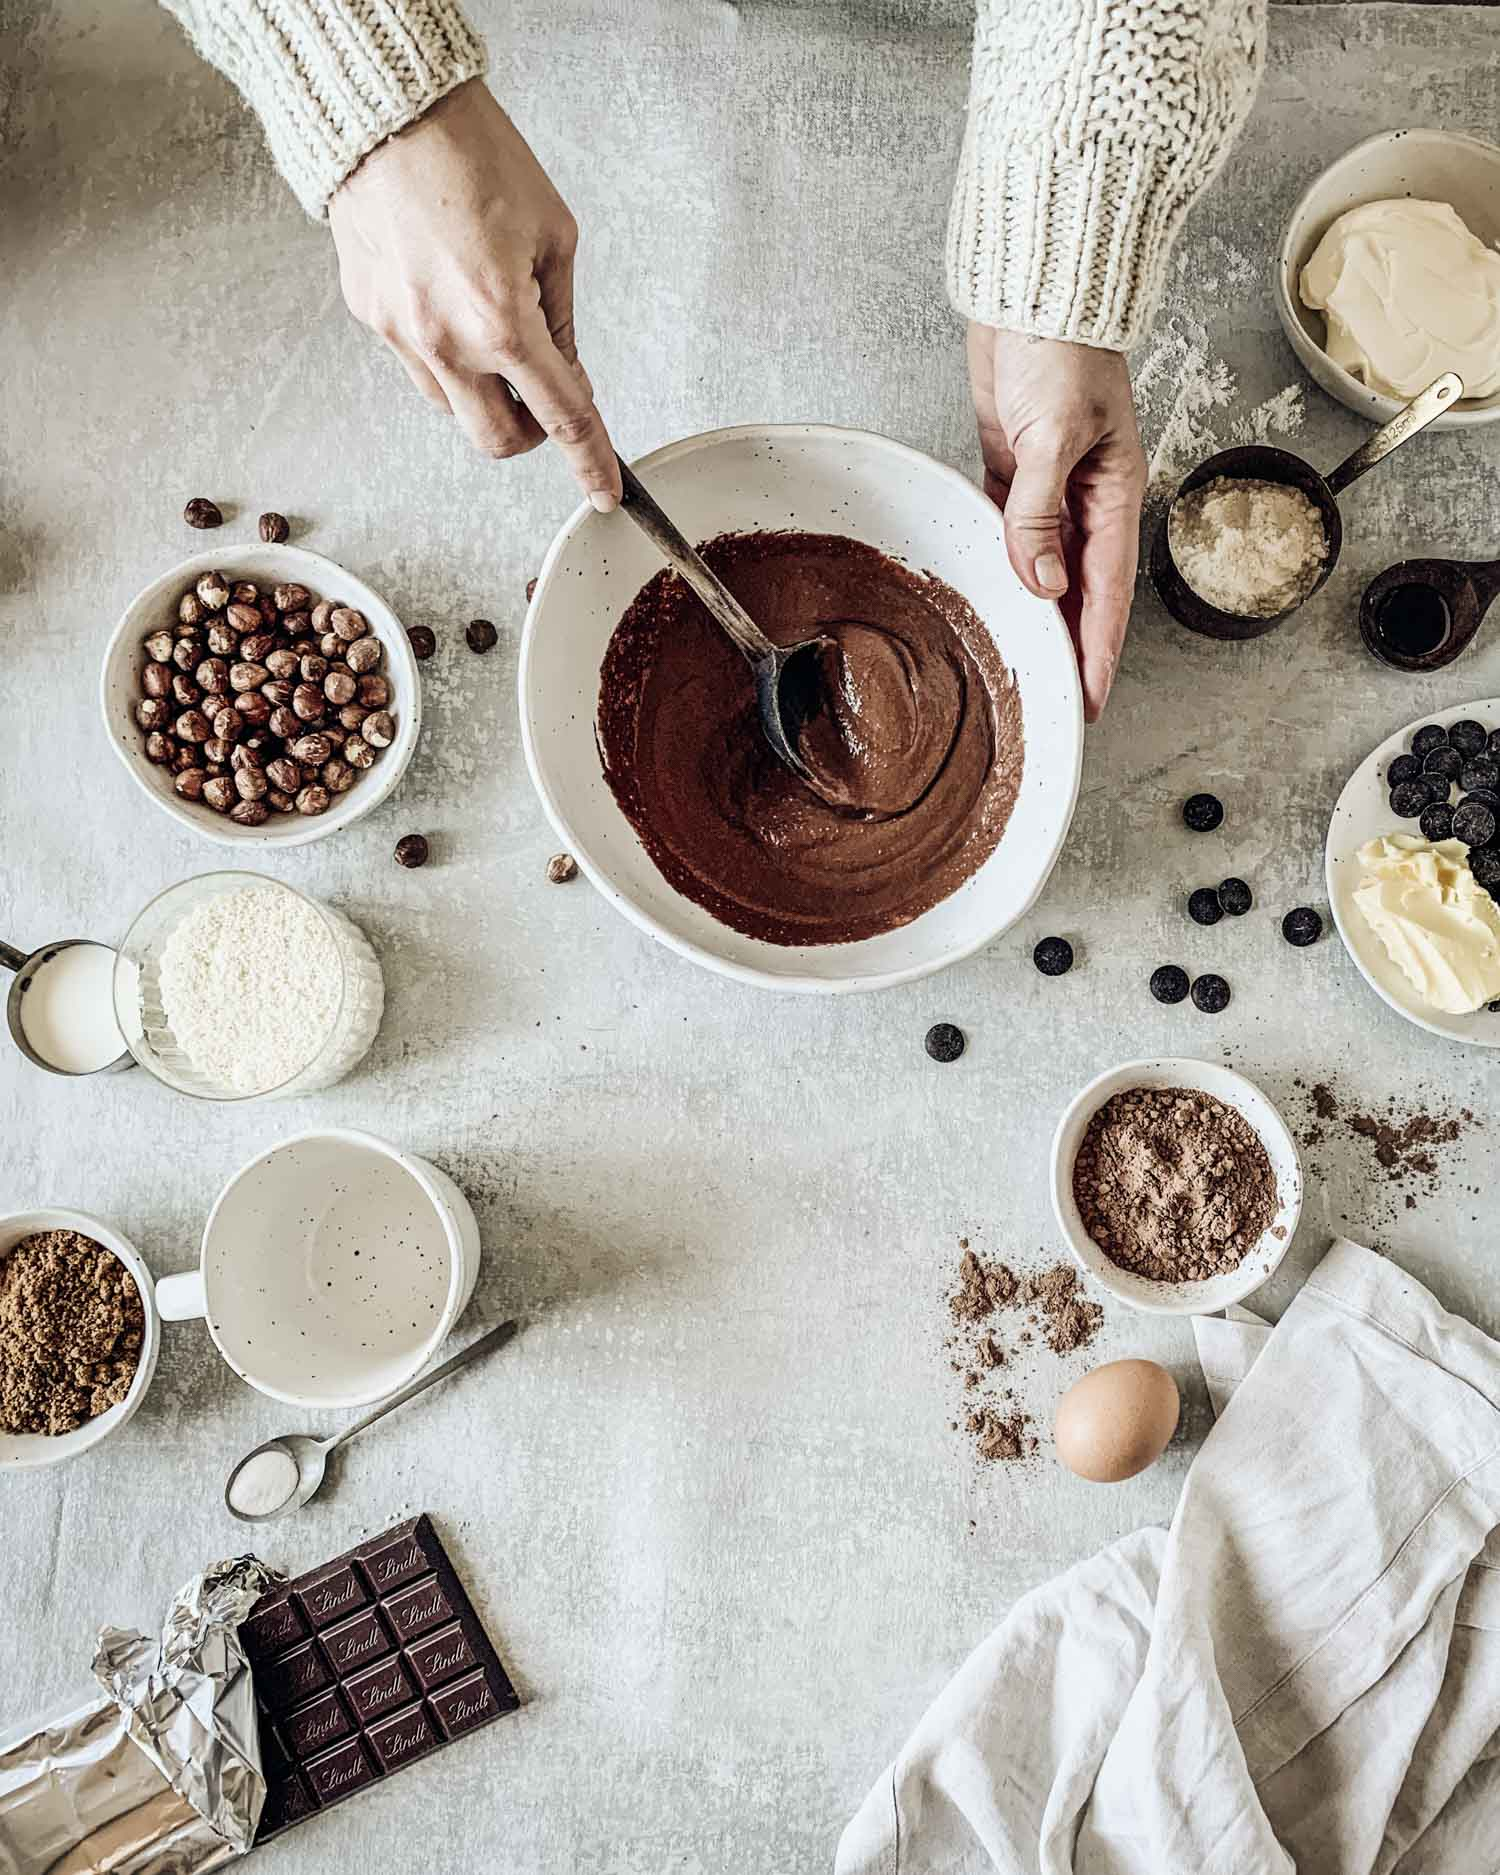 Chocolate pudding batter being mixed in Winterwares bowl